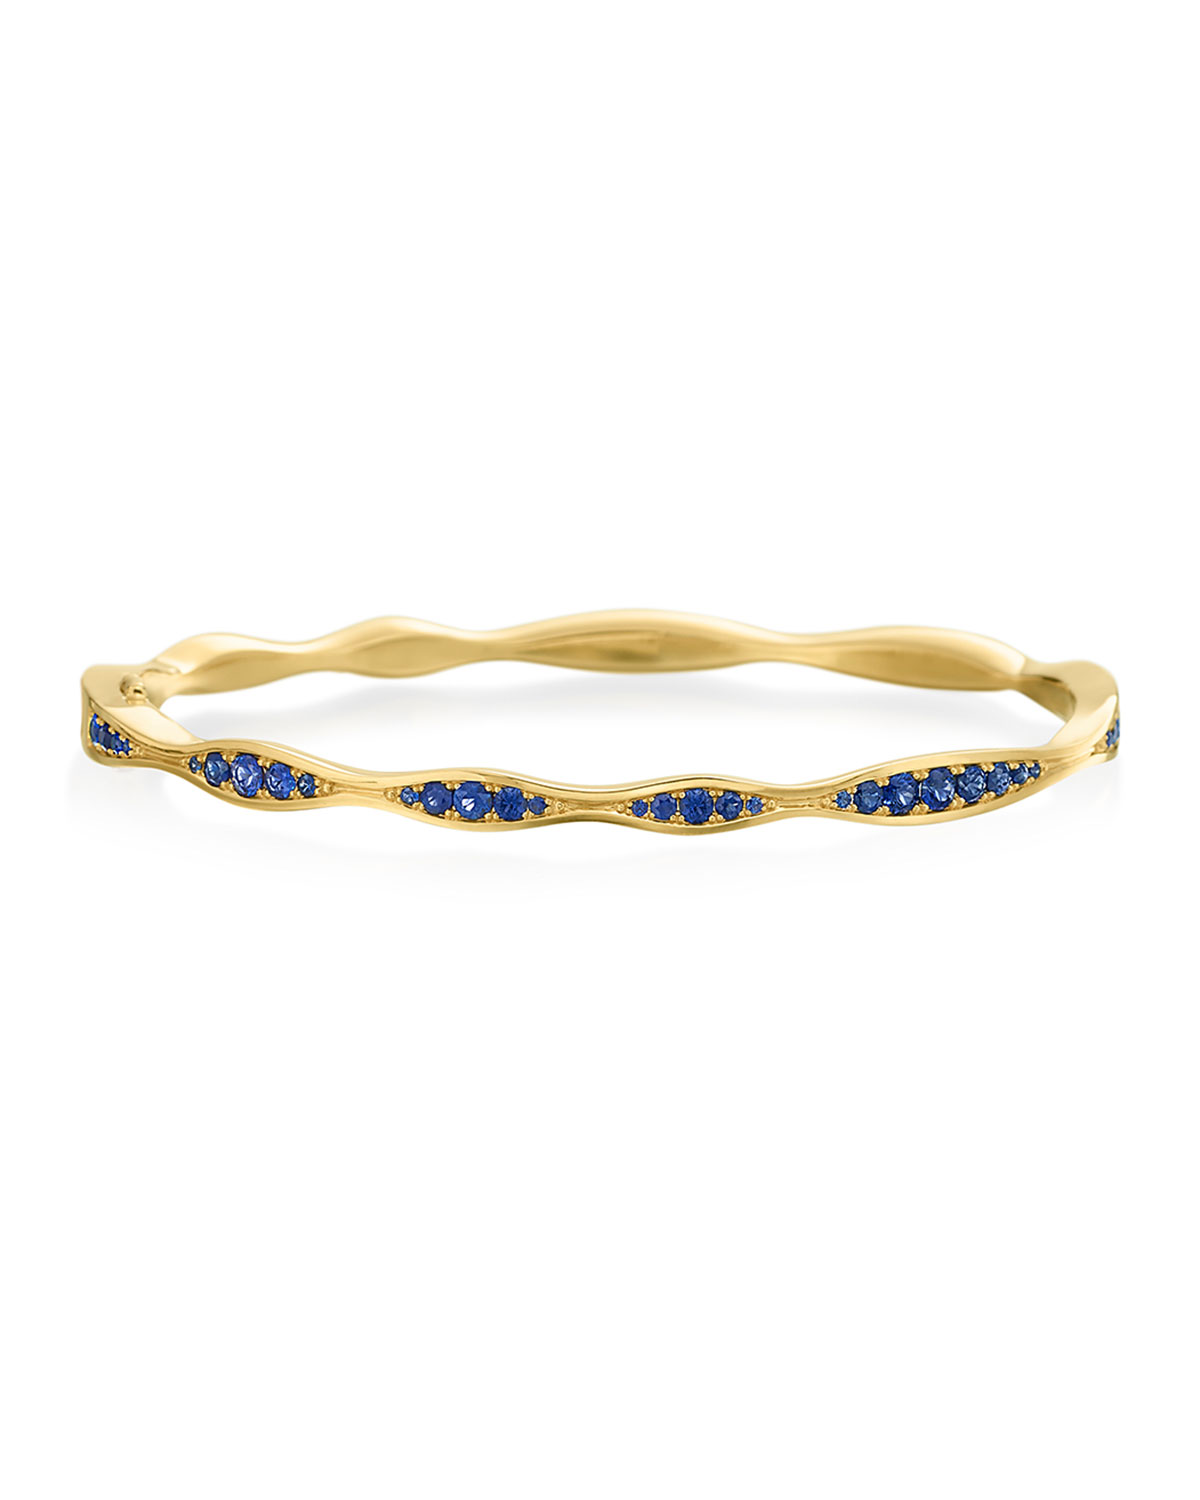 MARIA CANALE 18K Gold Blue Sapphire Wave Hinged Bangle